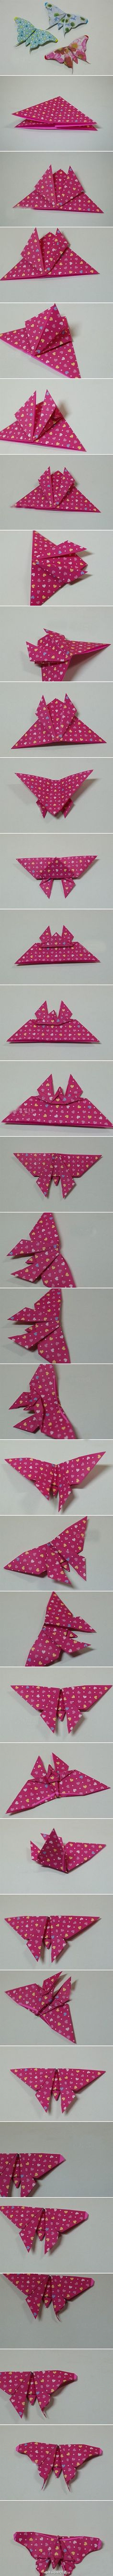 How to fold Origami Butterflies